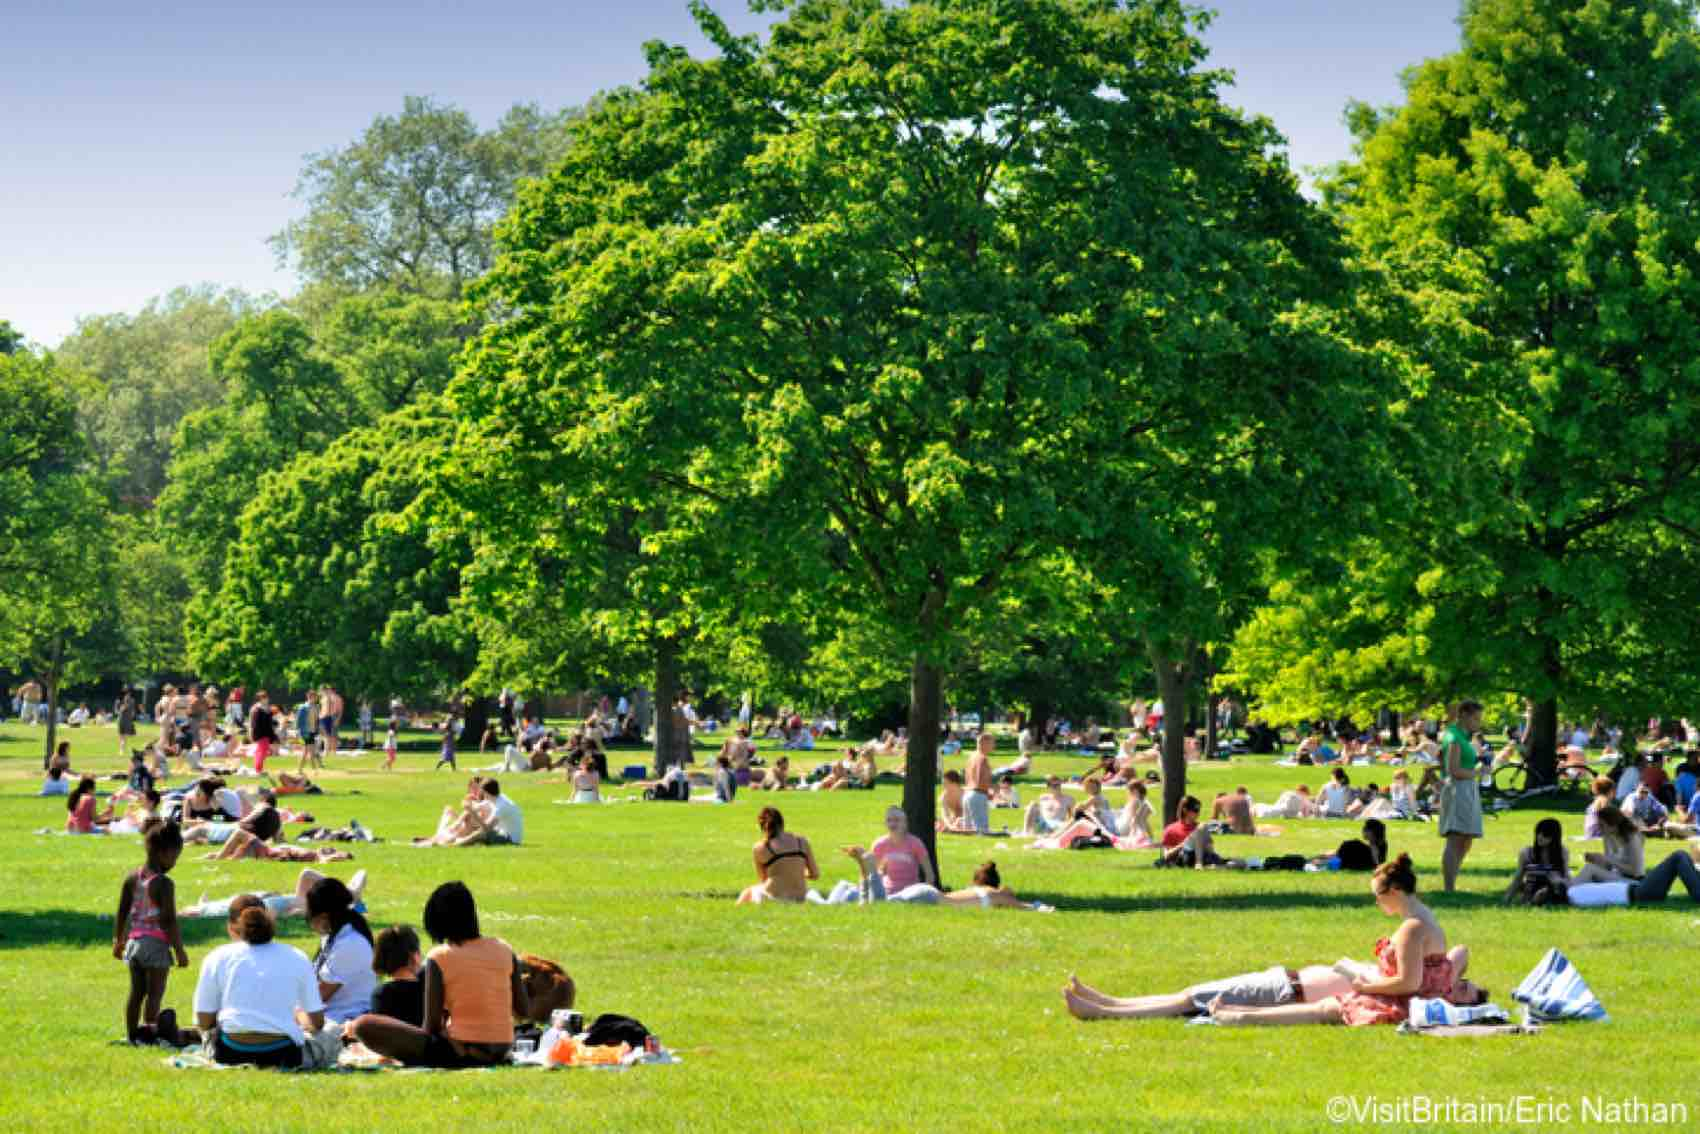 Crowds of people enjoying London's Hyde Park on a sunny summers day.